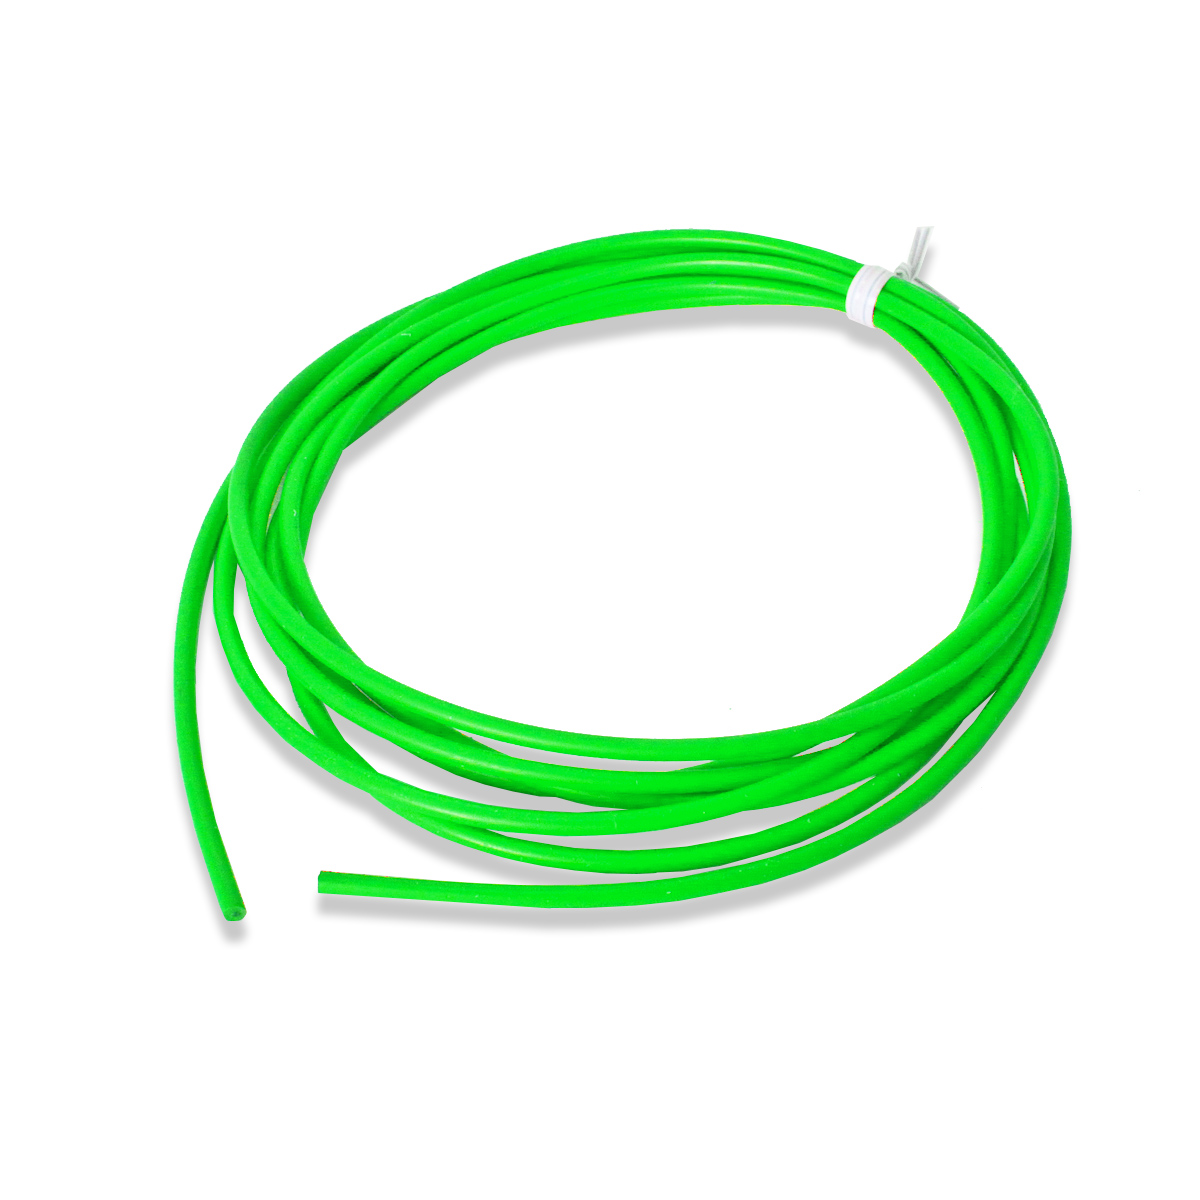 Coolflex45 silicone Wire 10awg 25Ft.